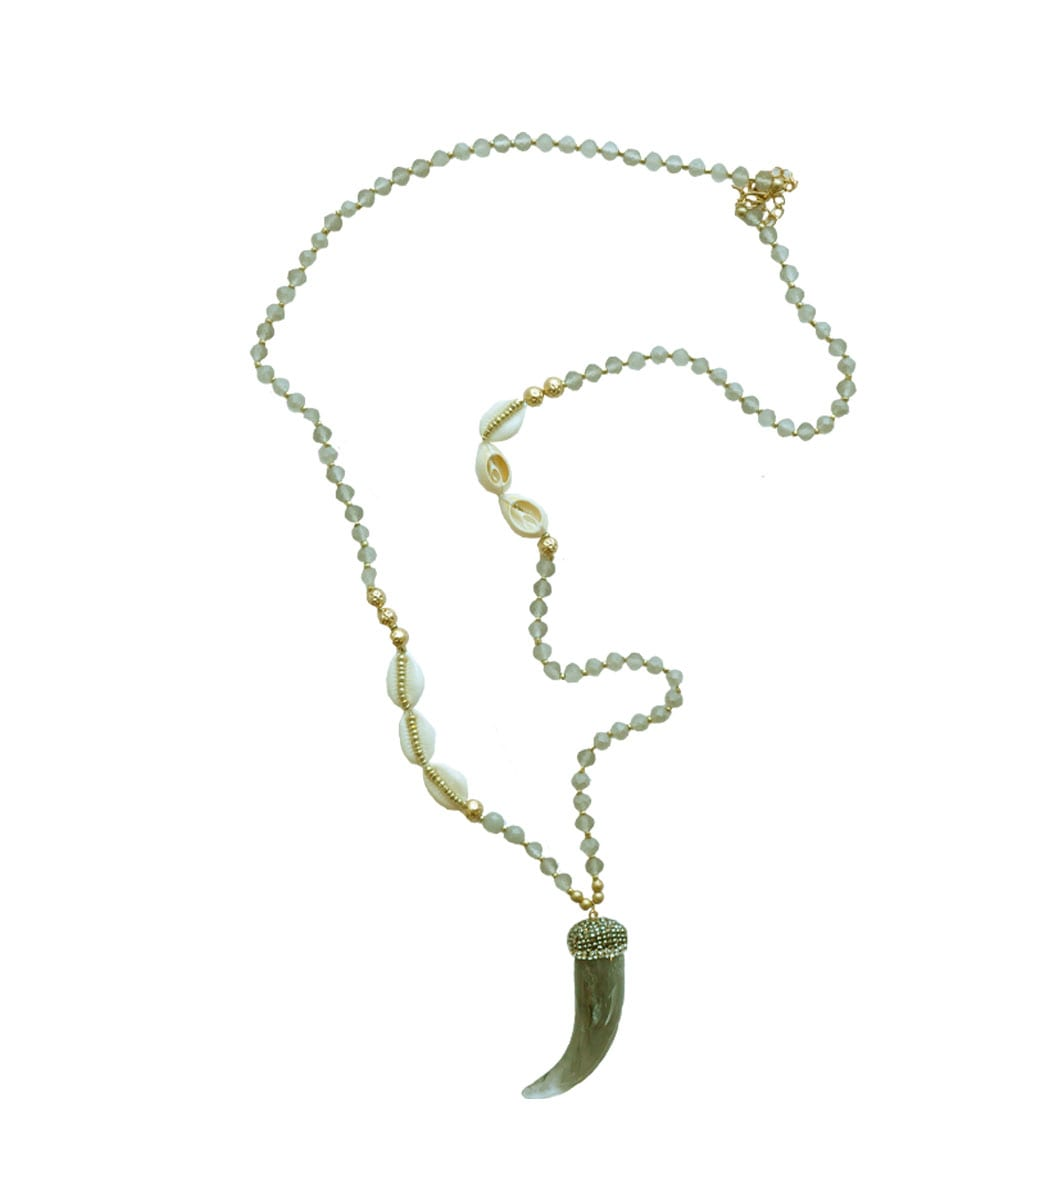 Horn shell necklace